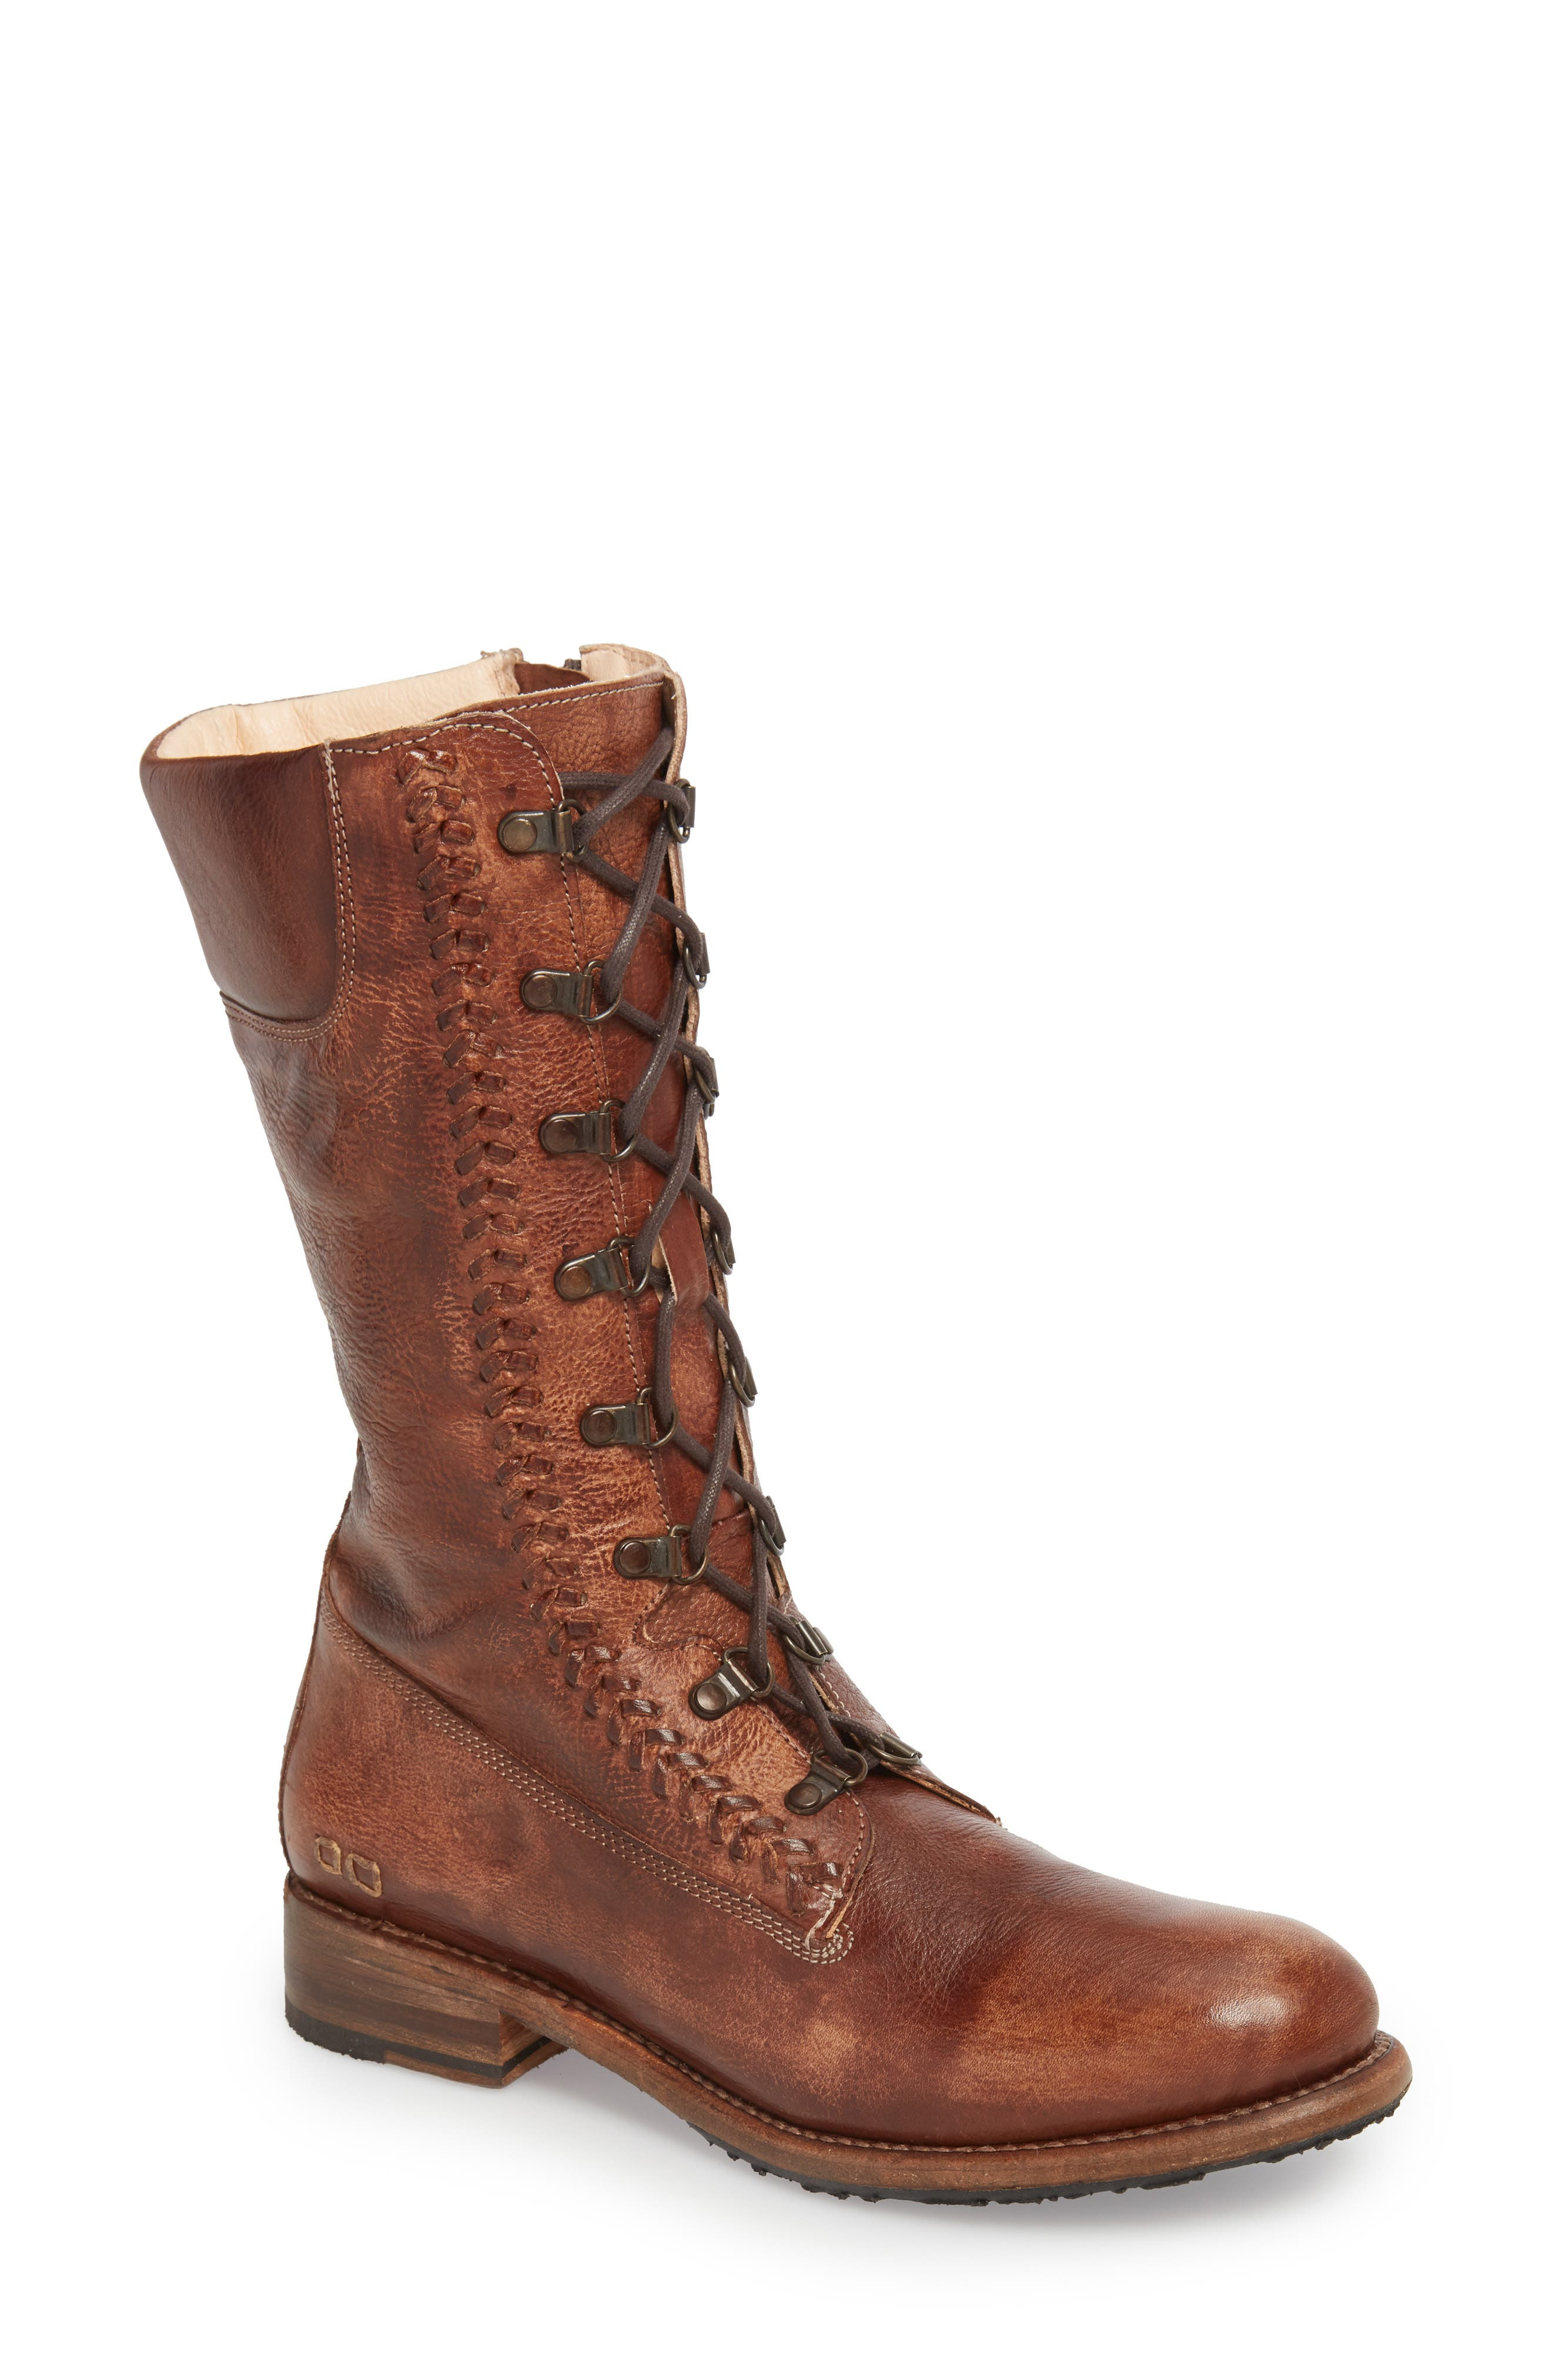 Bed Stu Dundee Boot, Brown